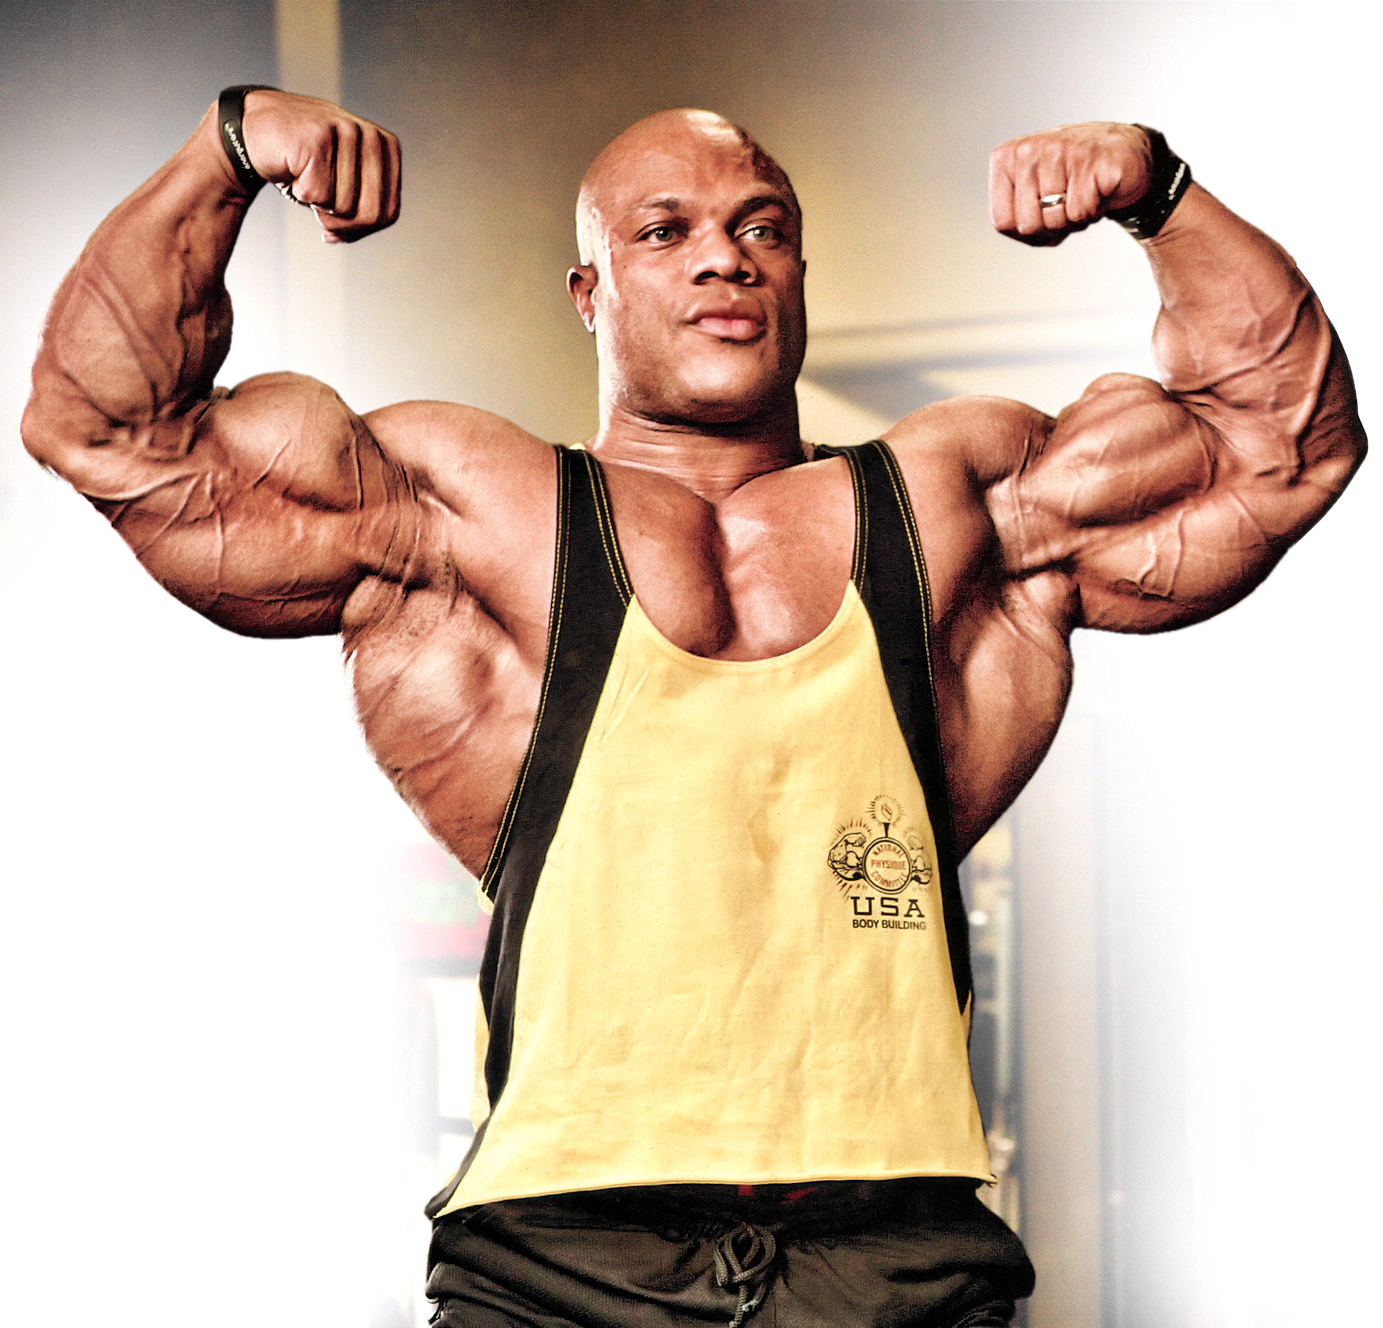 Phil Heath mr Olympia HD Wallpapers 2013 All About HD Wallpapers 1383x1328